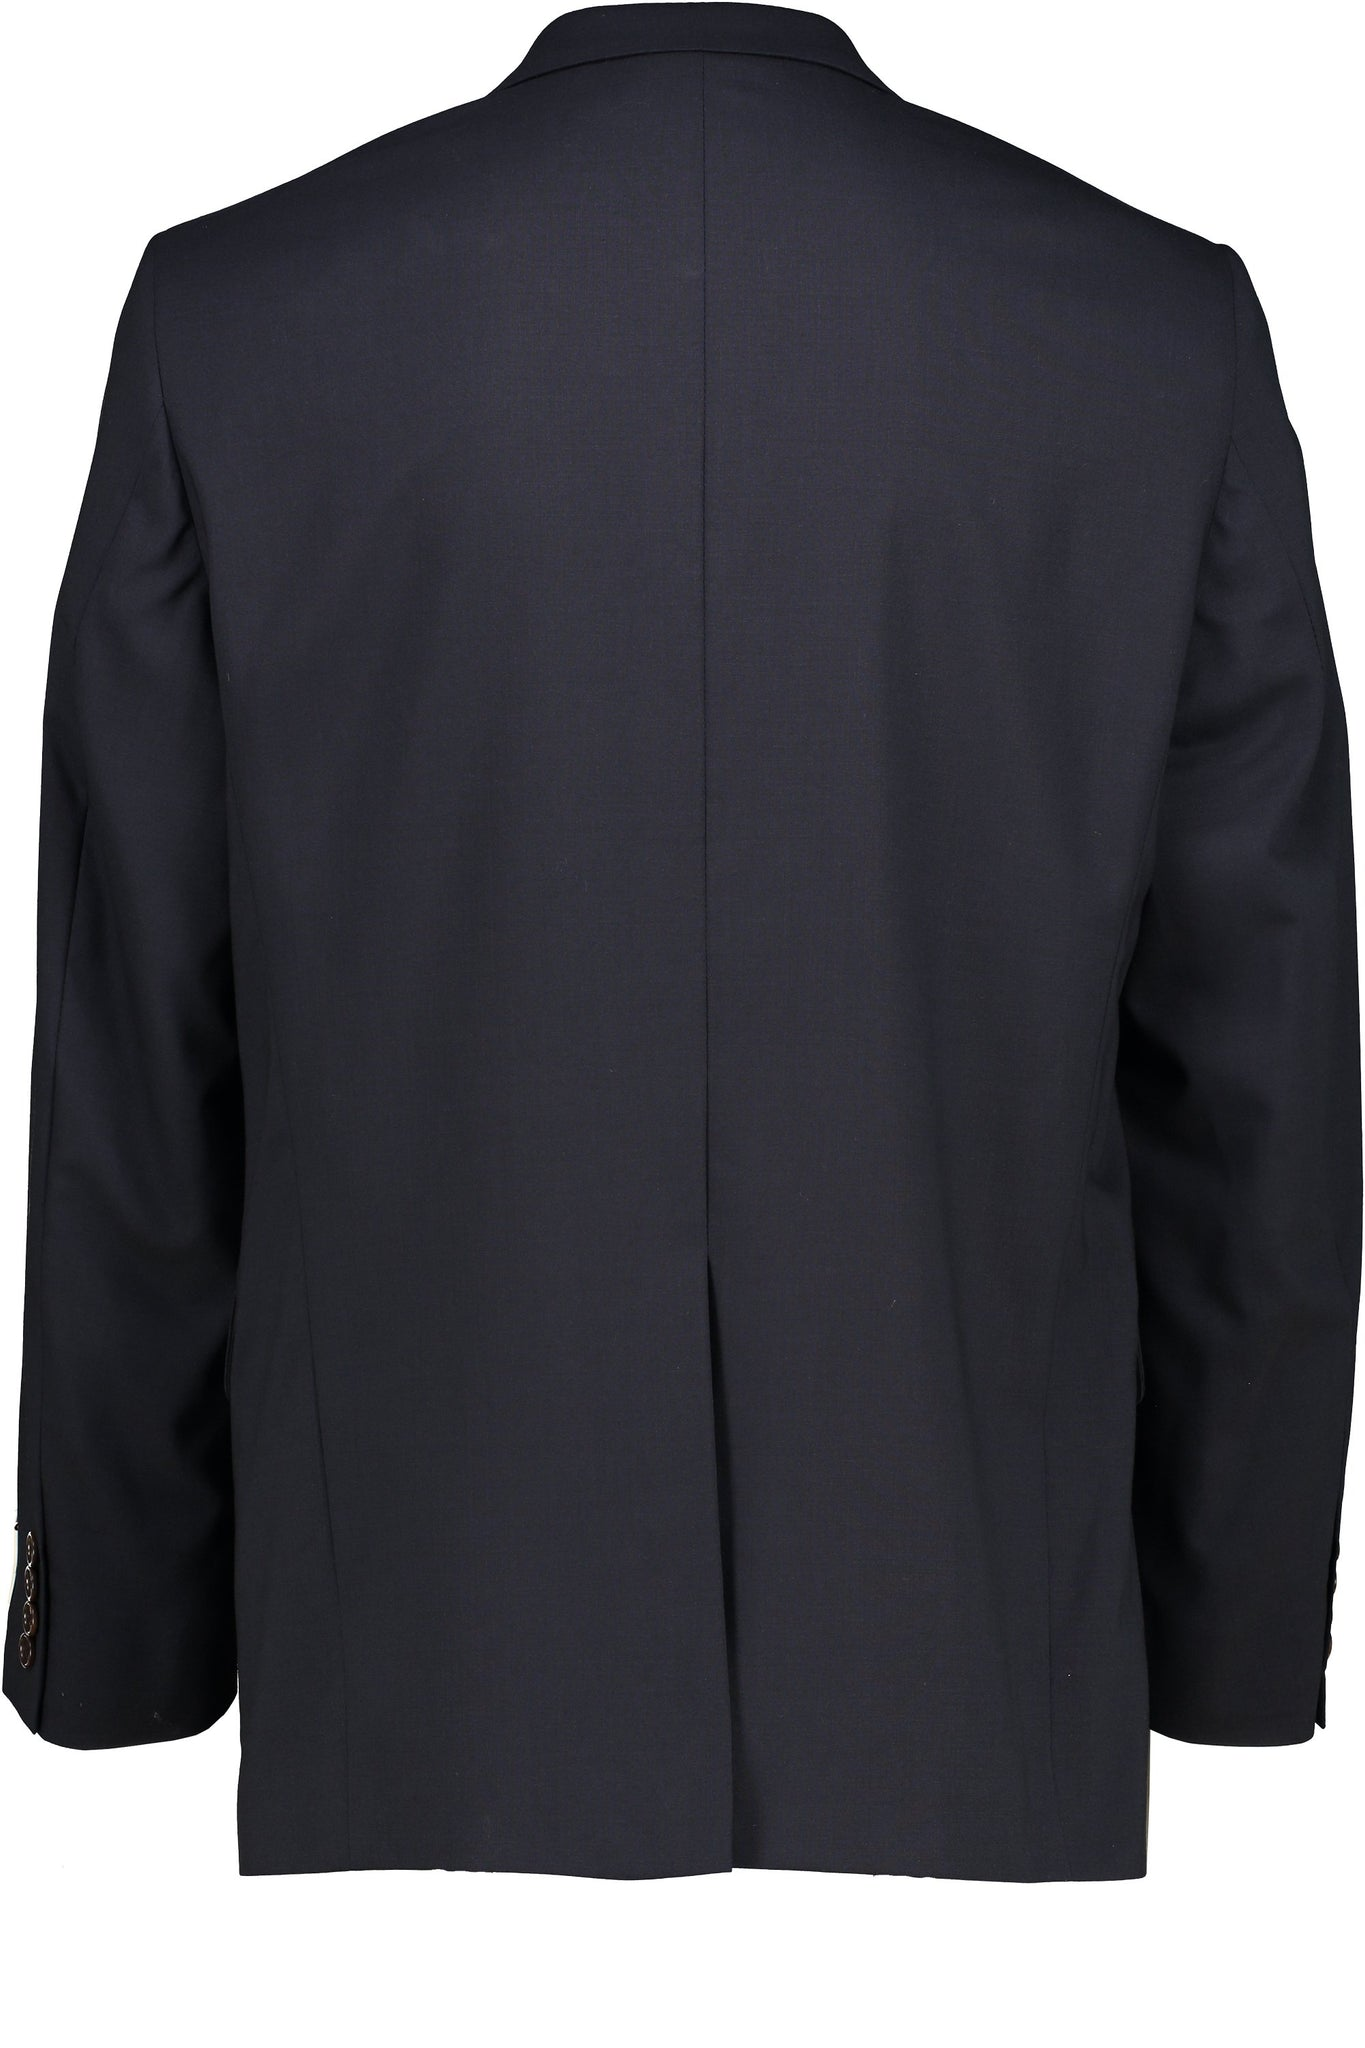 Classic Fit Navy H-Tech Wool Suit Separate Jacket -  Hardwick.com